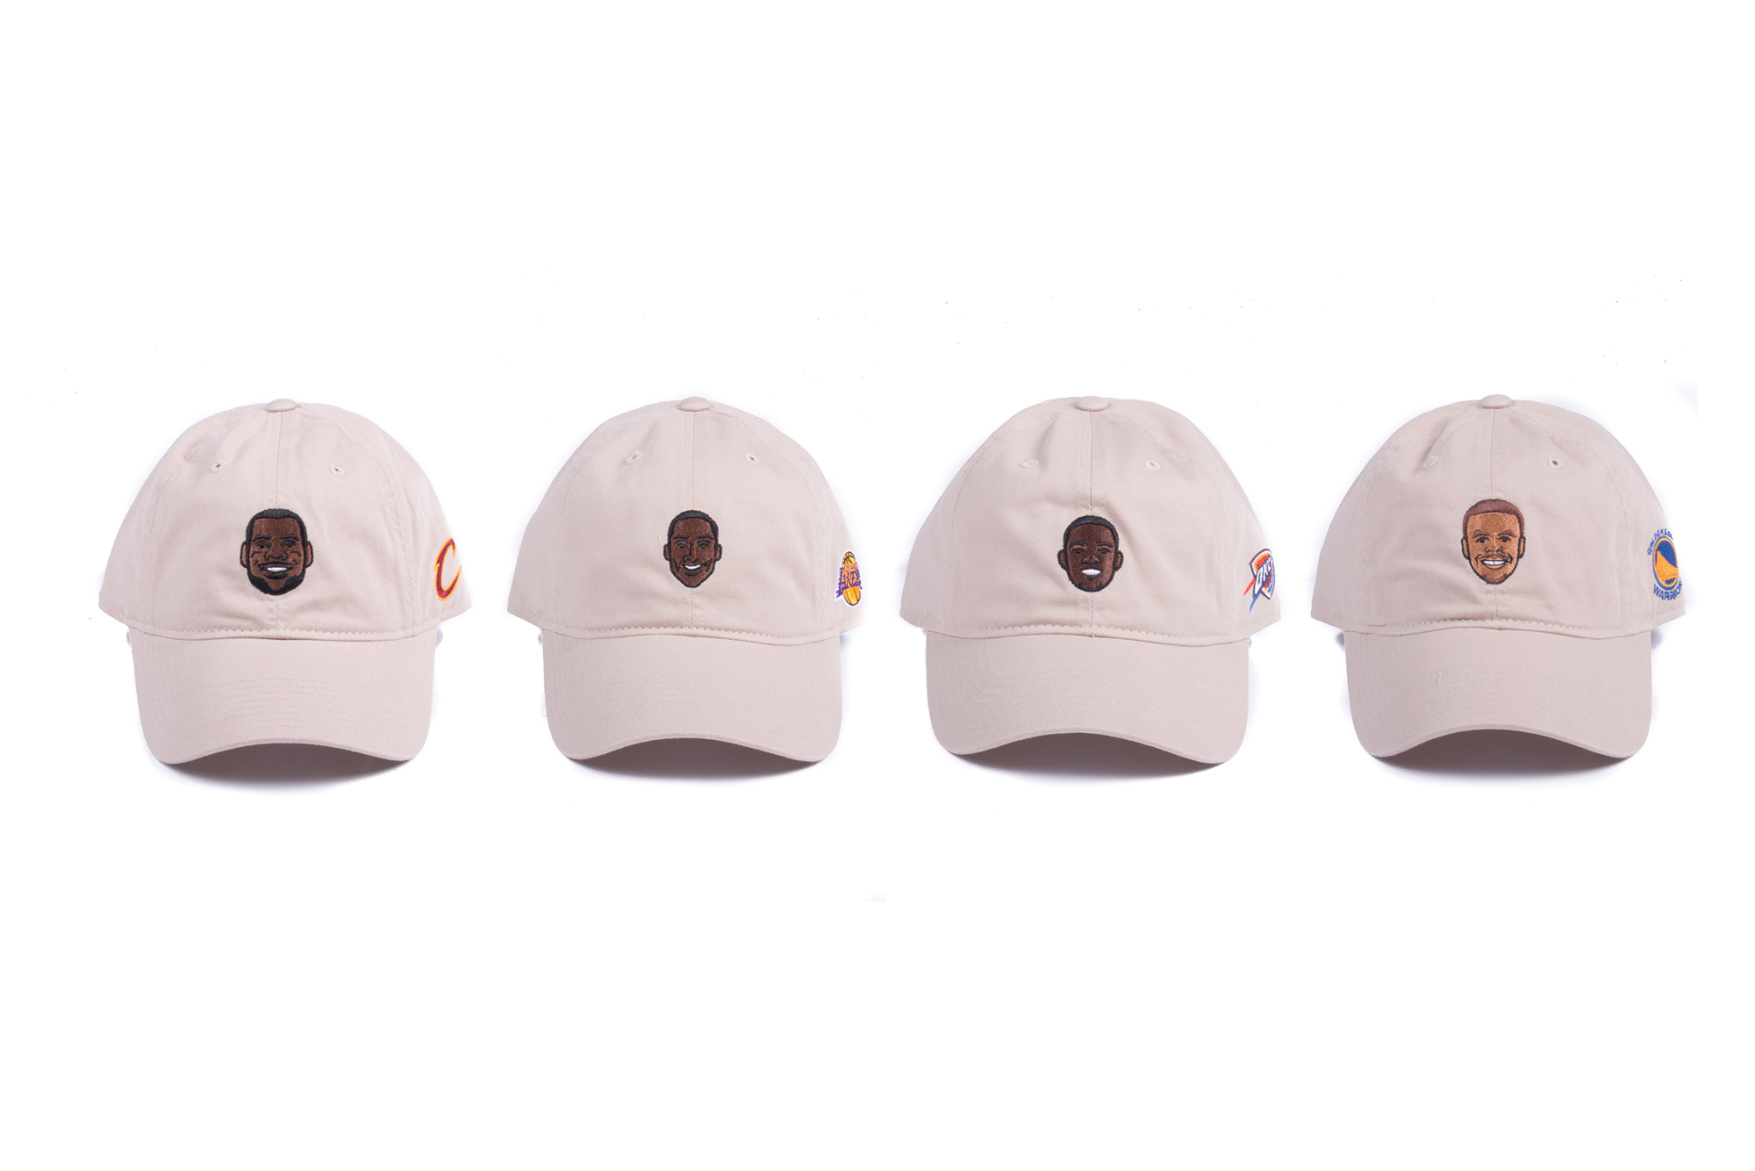 Adidas Designs Dad Hats Of LeBron James, Kobe Bryant, KD & Steph Curry